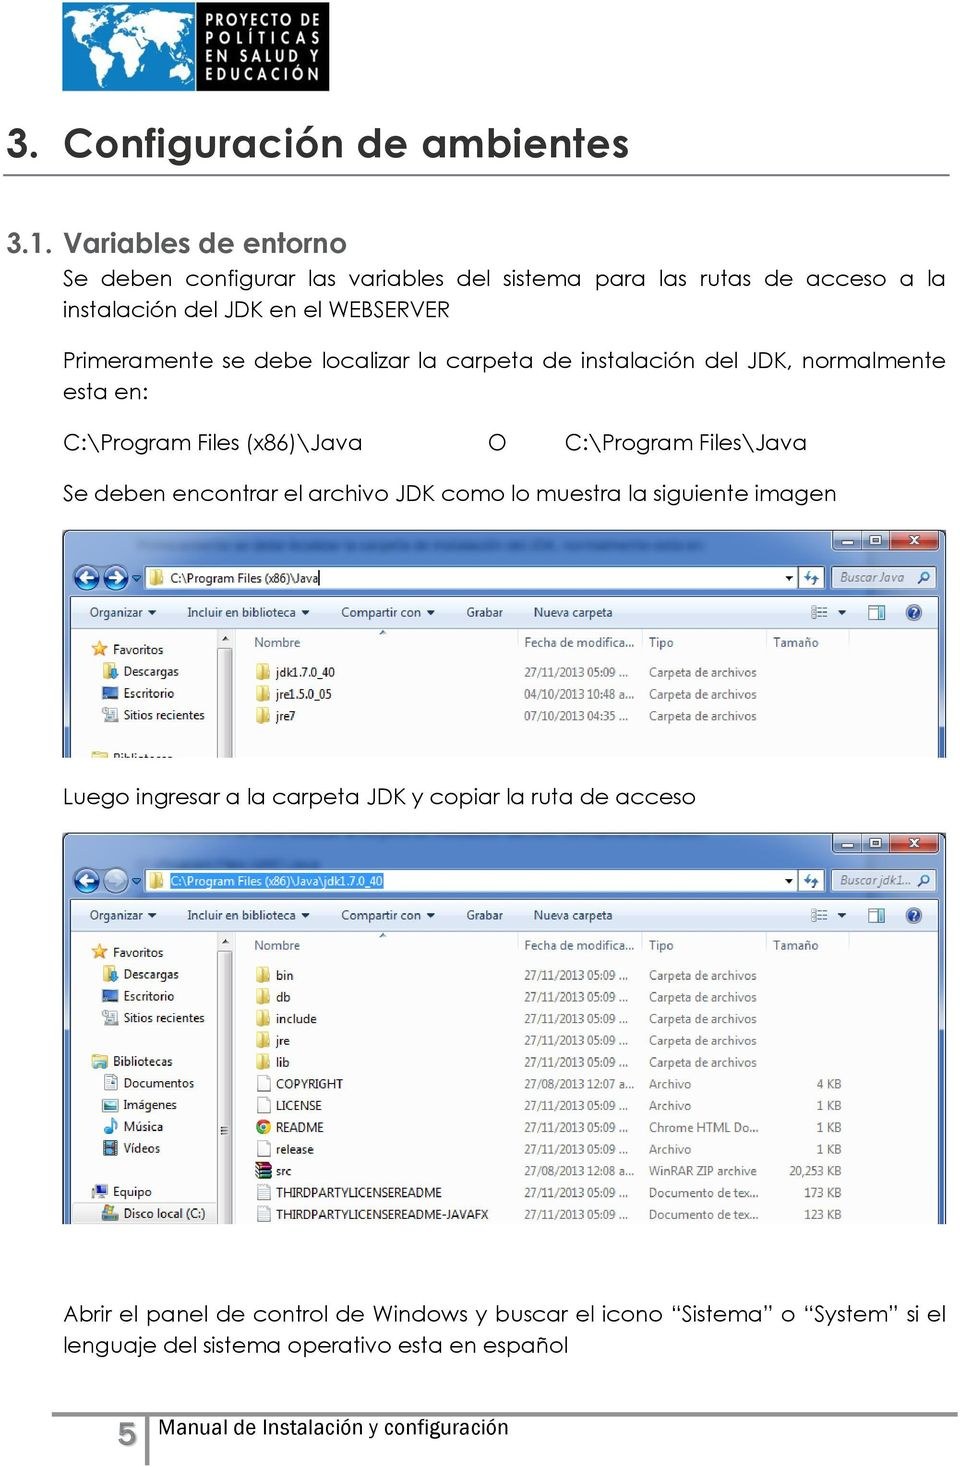 Primeramente se debe localizar la carpeta de instalación del JDK, normalmente esta en: C:\Program Files (x86)\java O C:\Program Files\Java